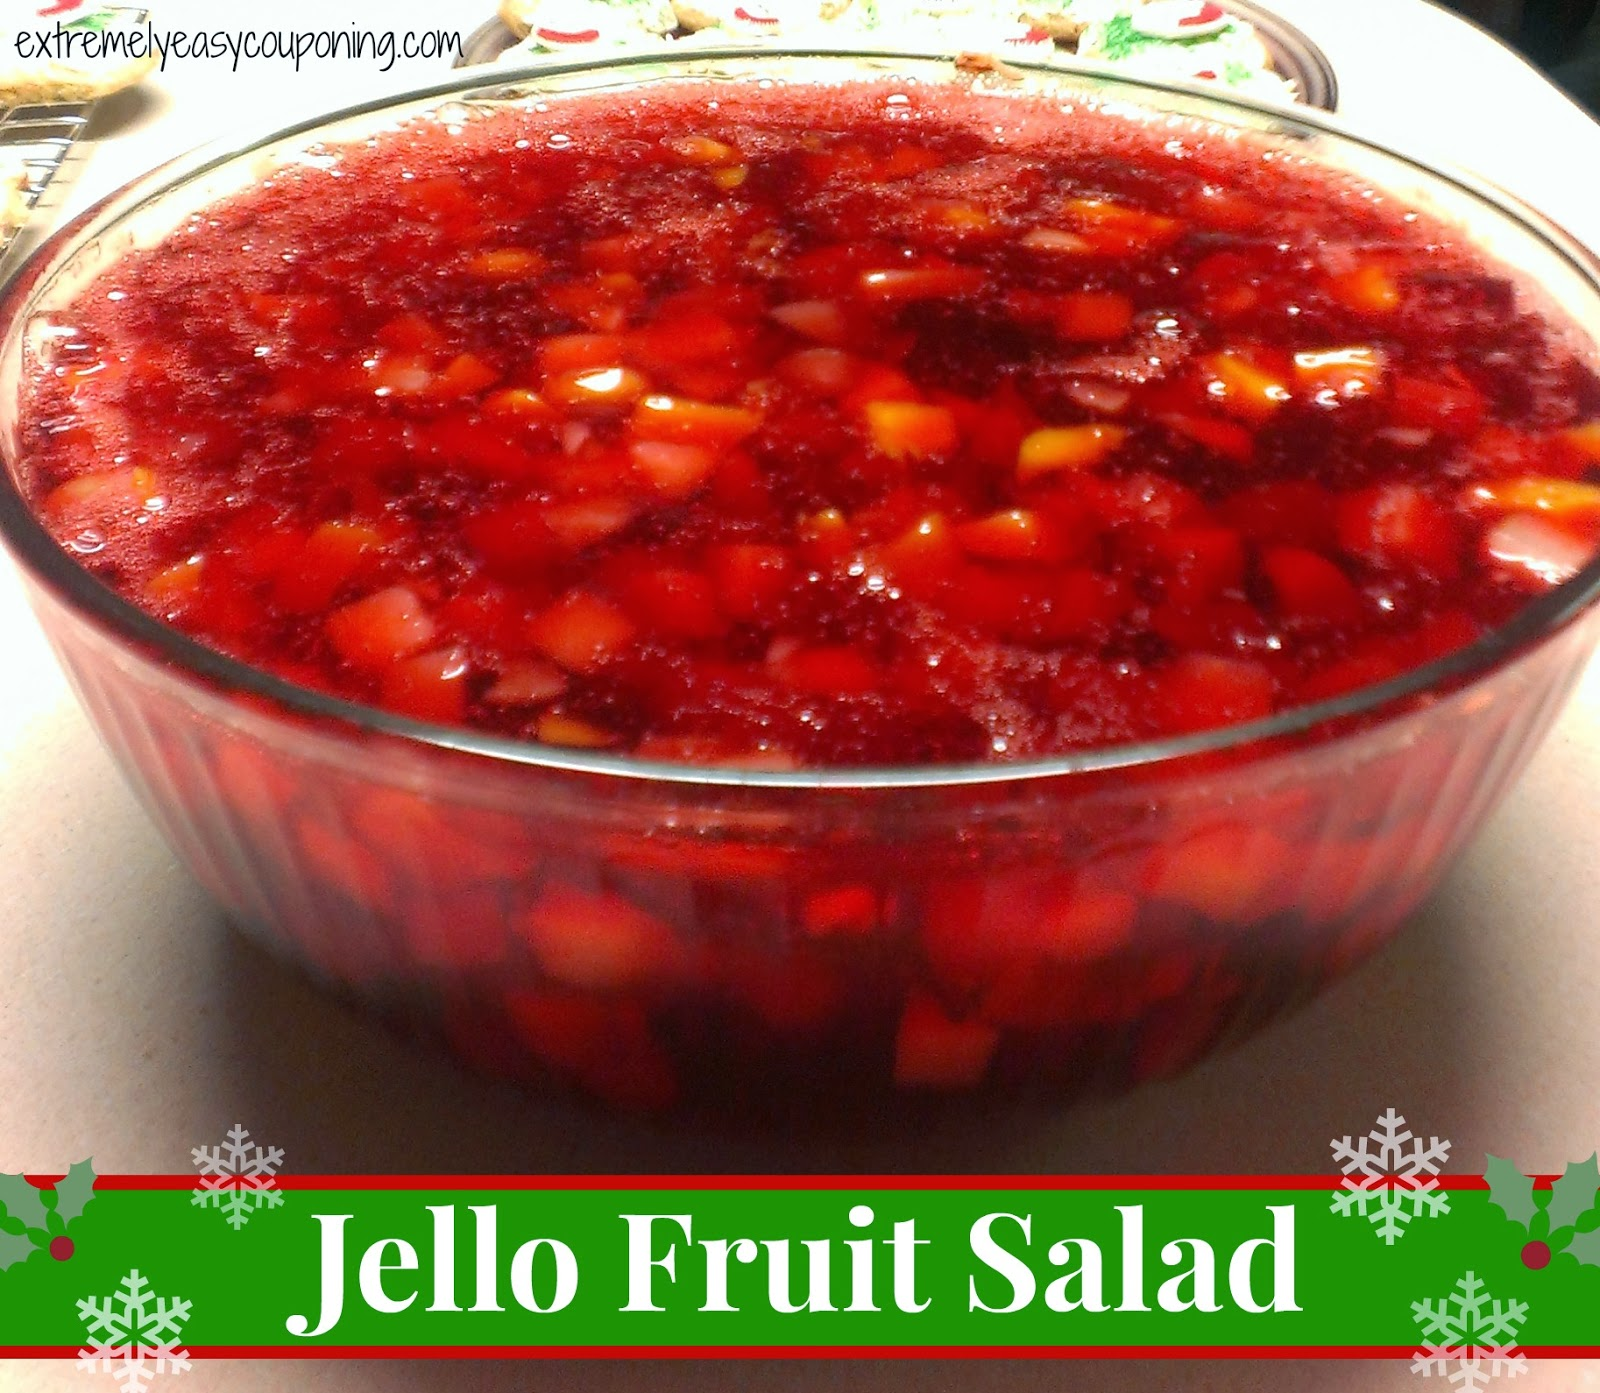 ... Recipes, Ribbons Jello, Ribbons Moldings, Rainbows Jello, Jello Salad